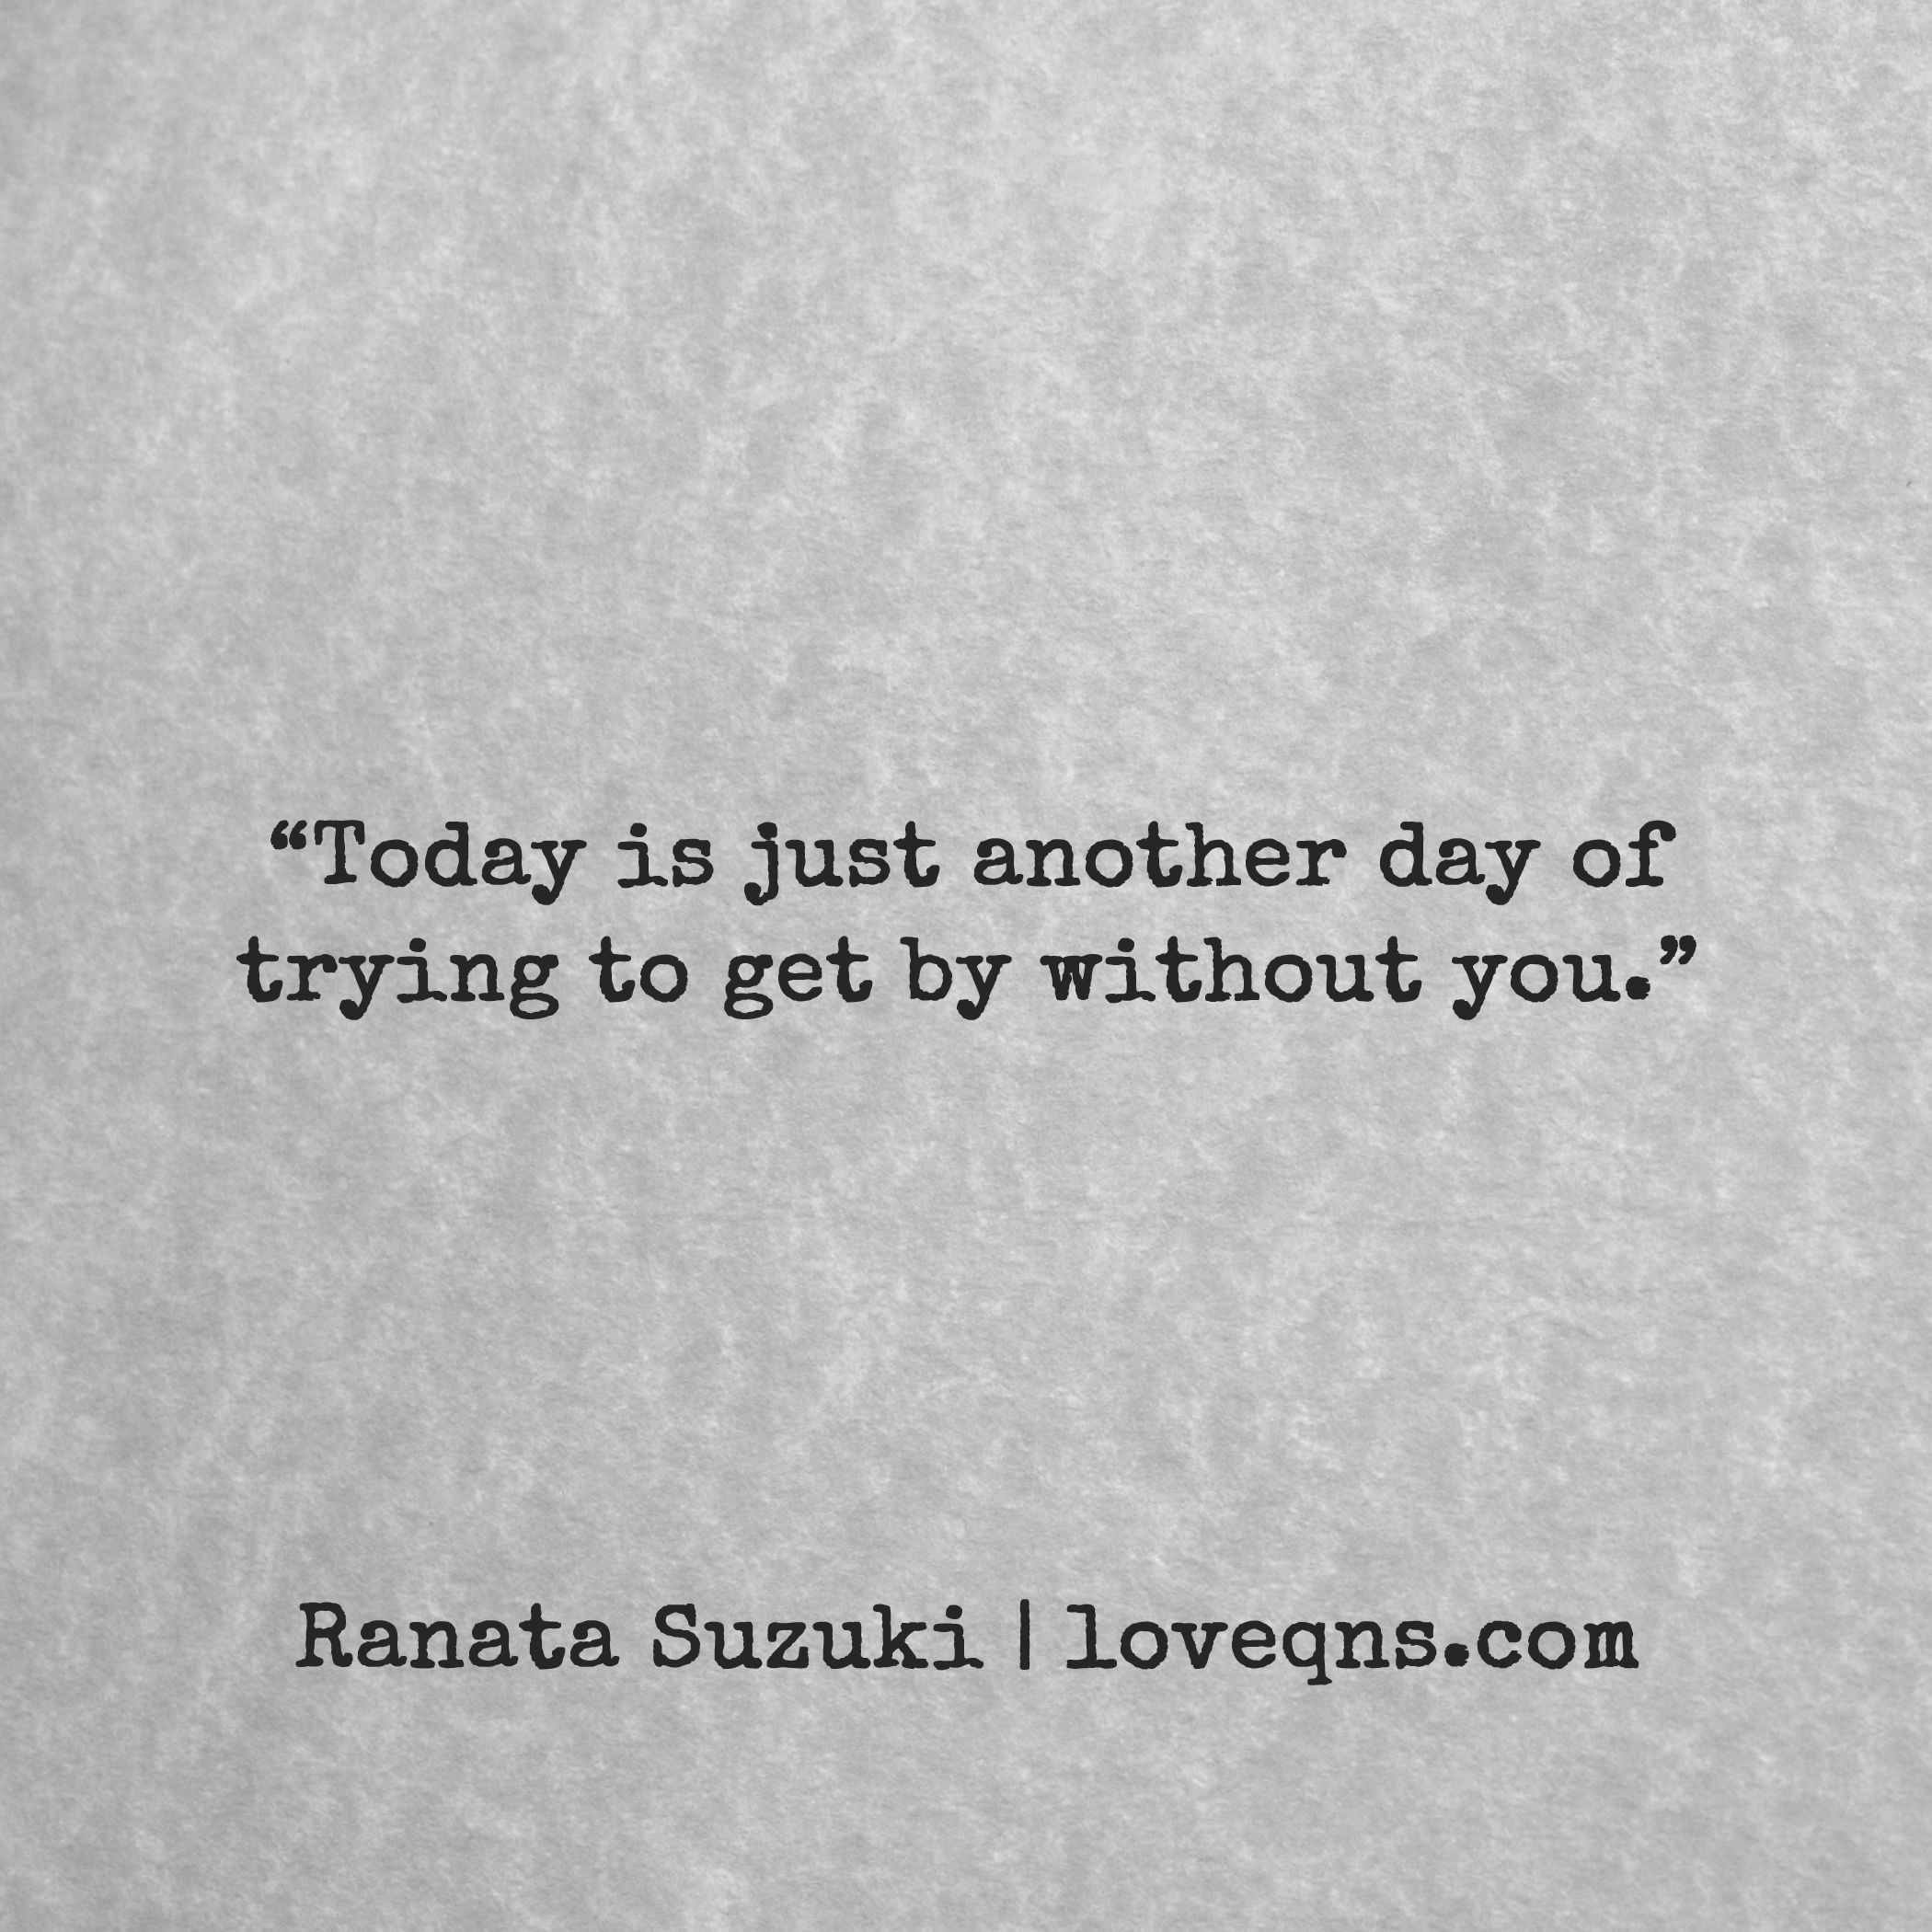 Love quotes · Today is just another day of trying to by without you Ranata Suzuki